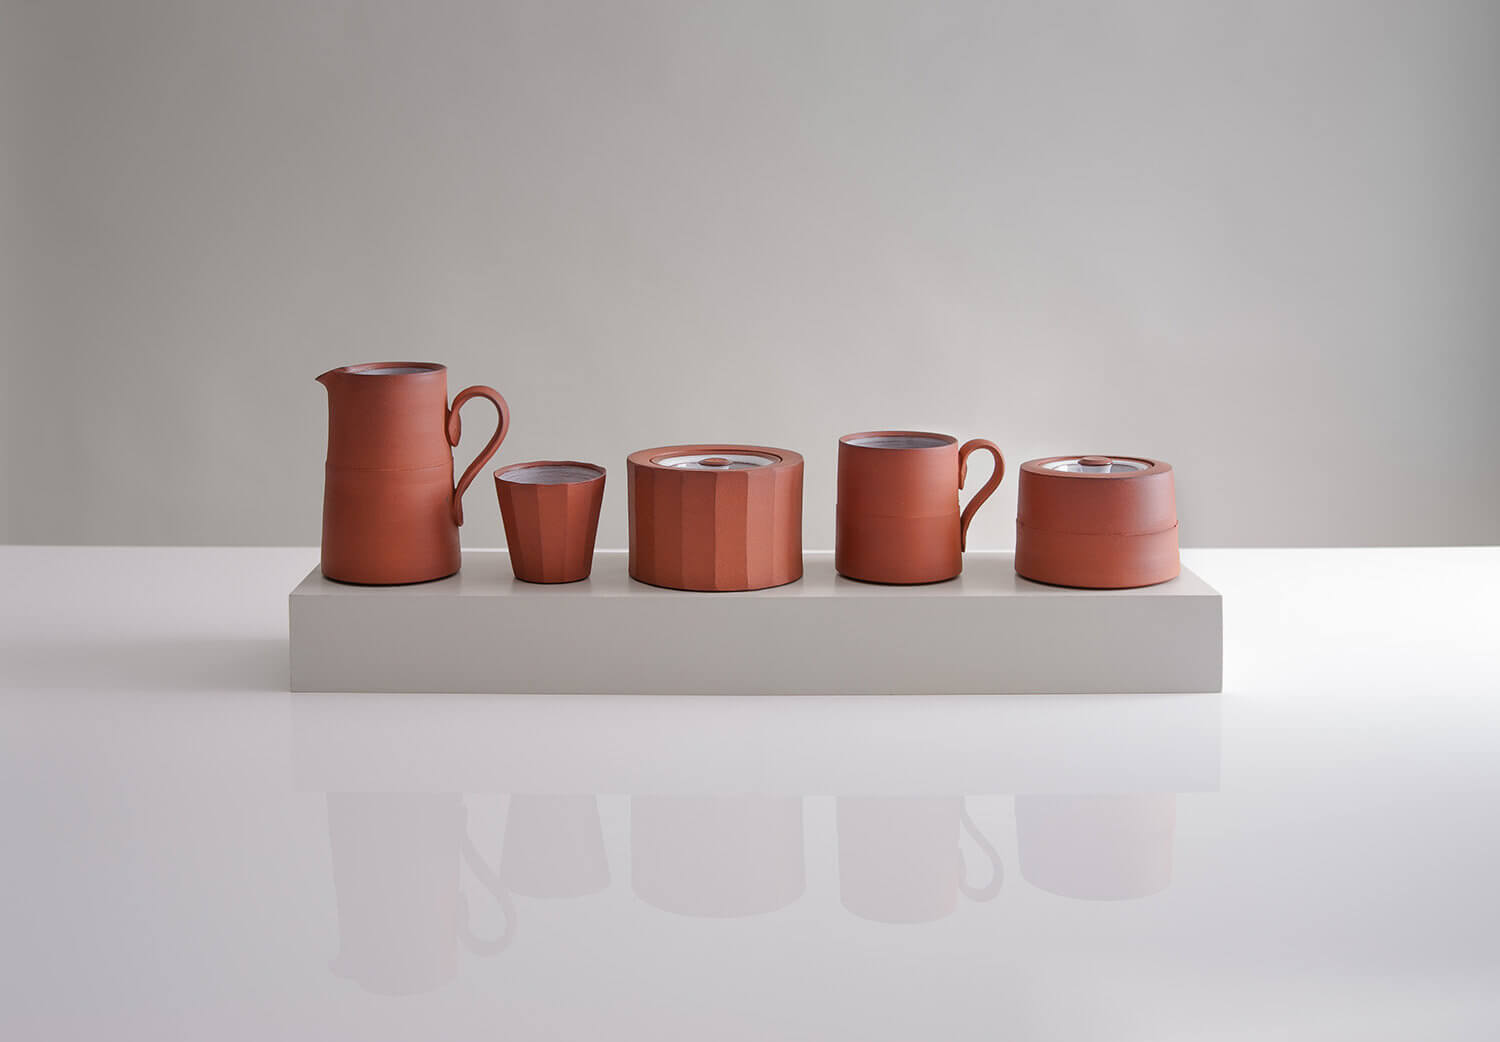 Studio lit product photograph of handmade ceramics with reflection